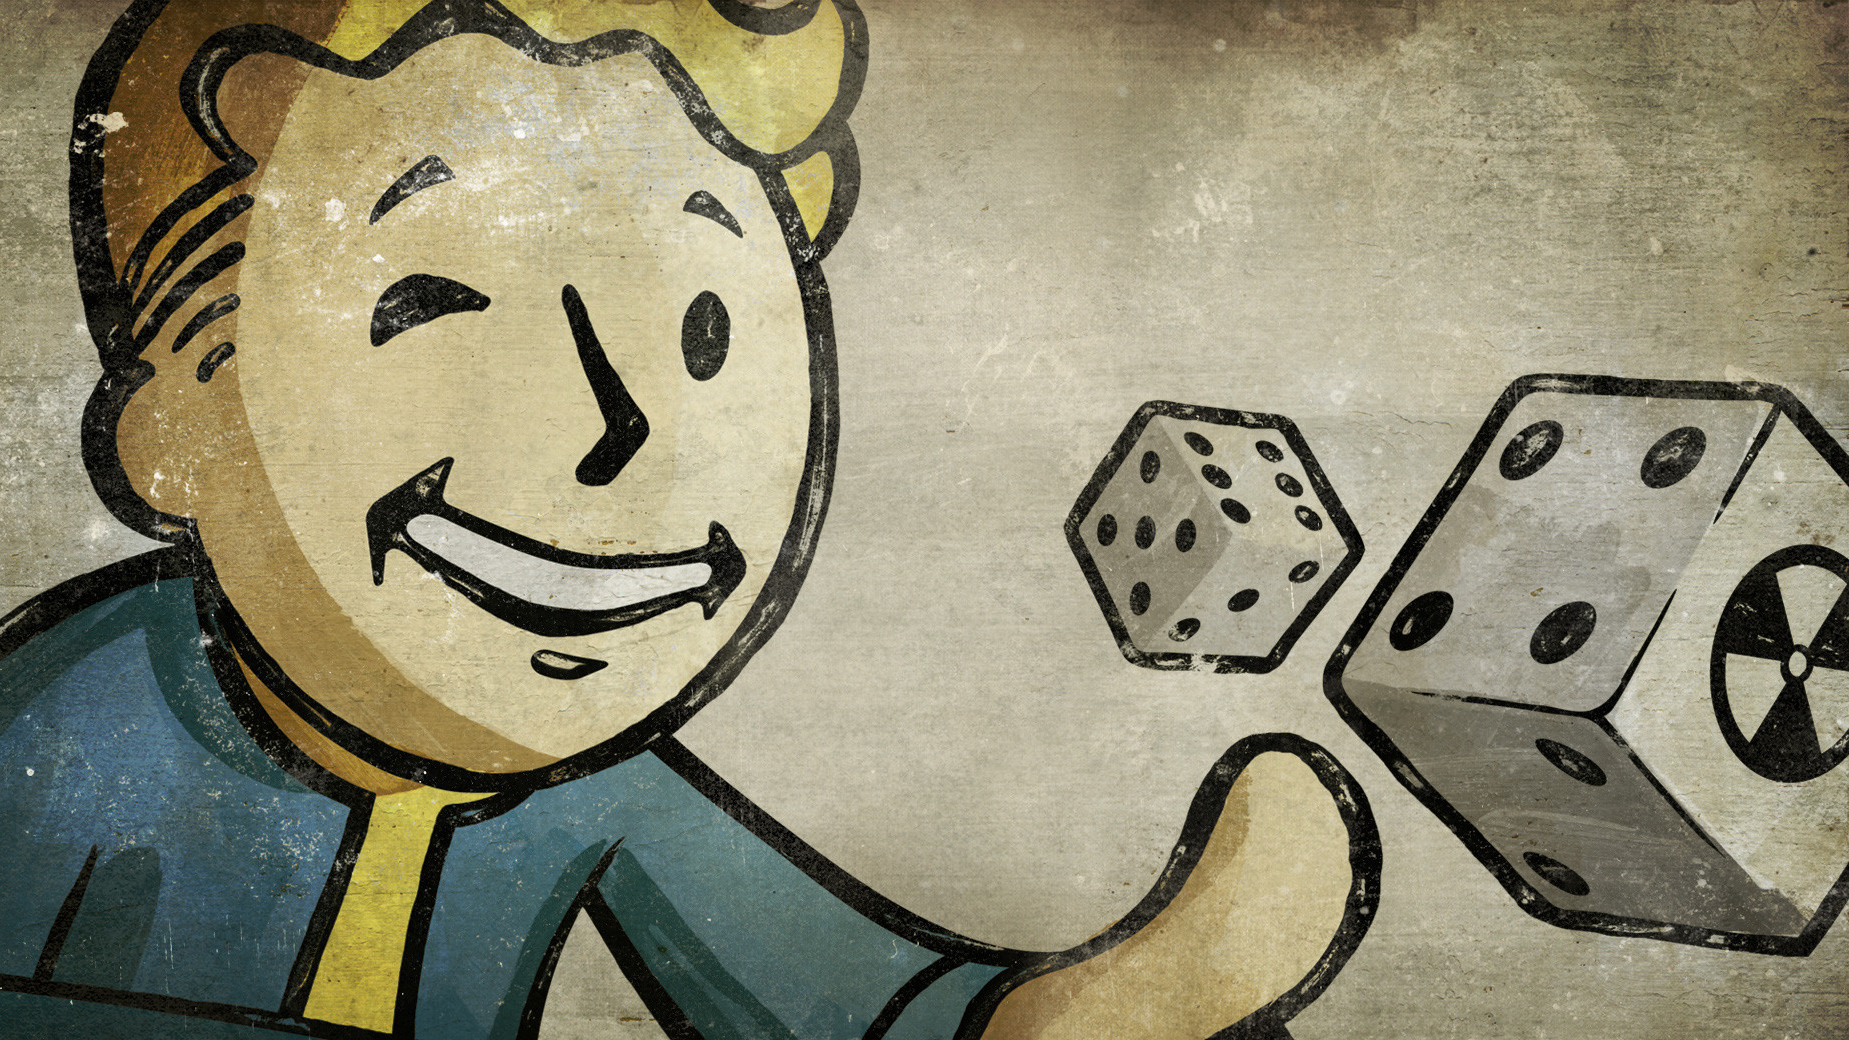 fallout-tv-show-announced-from-amazon-prime-and-the-westworld-creators